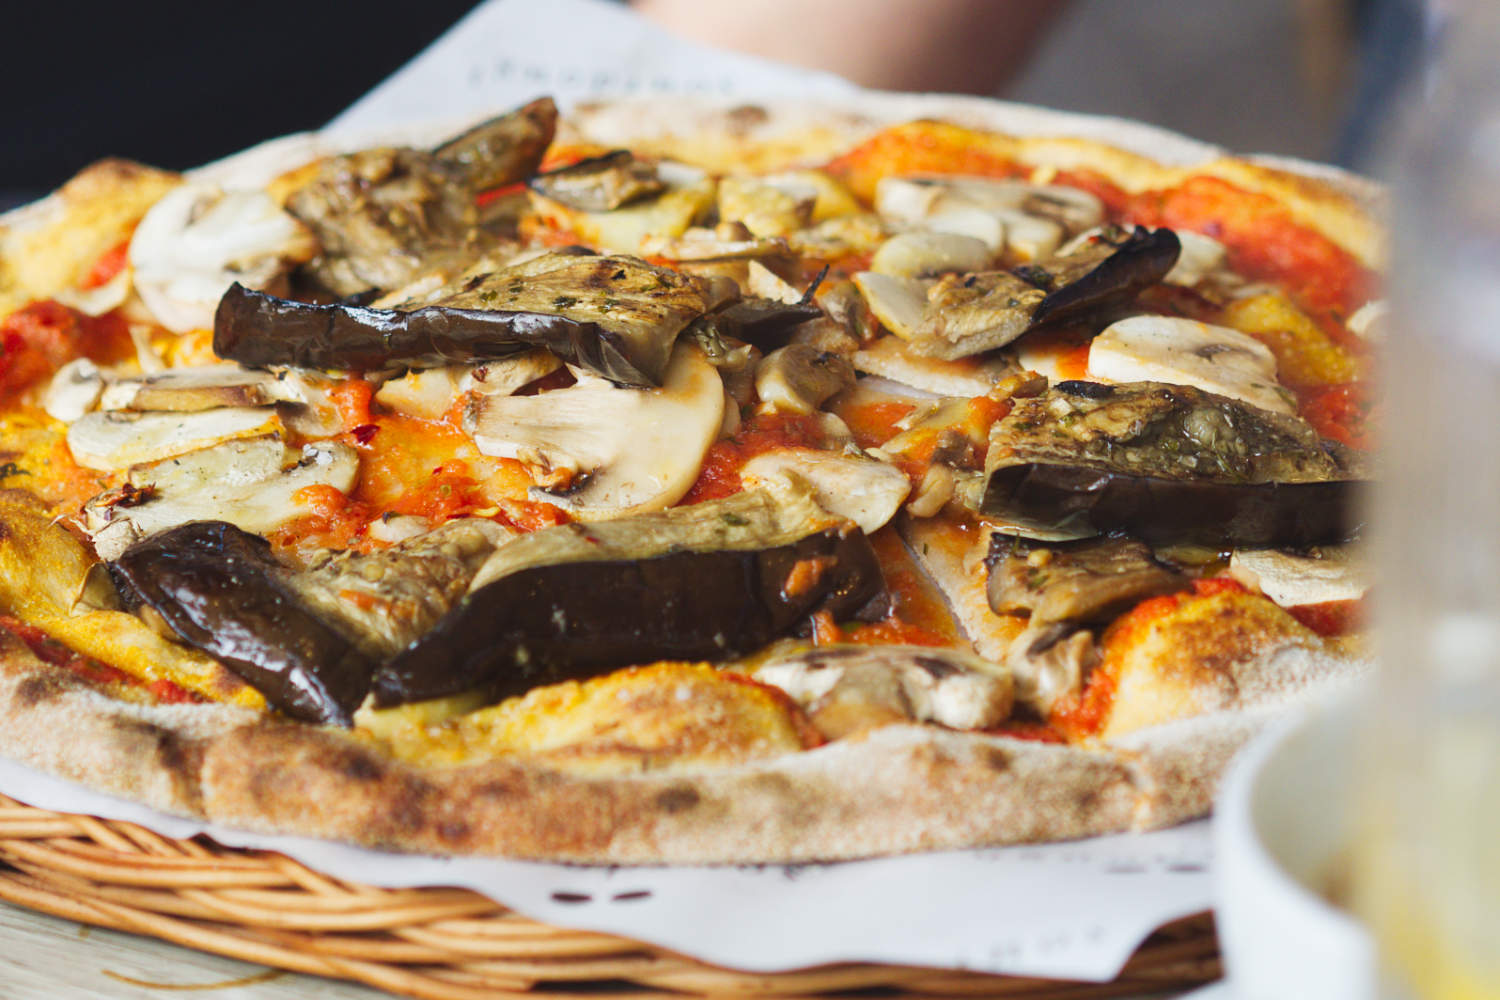 Vegan aubergine pizza at Soderberg, Edinburgh